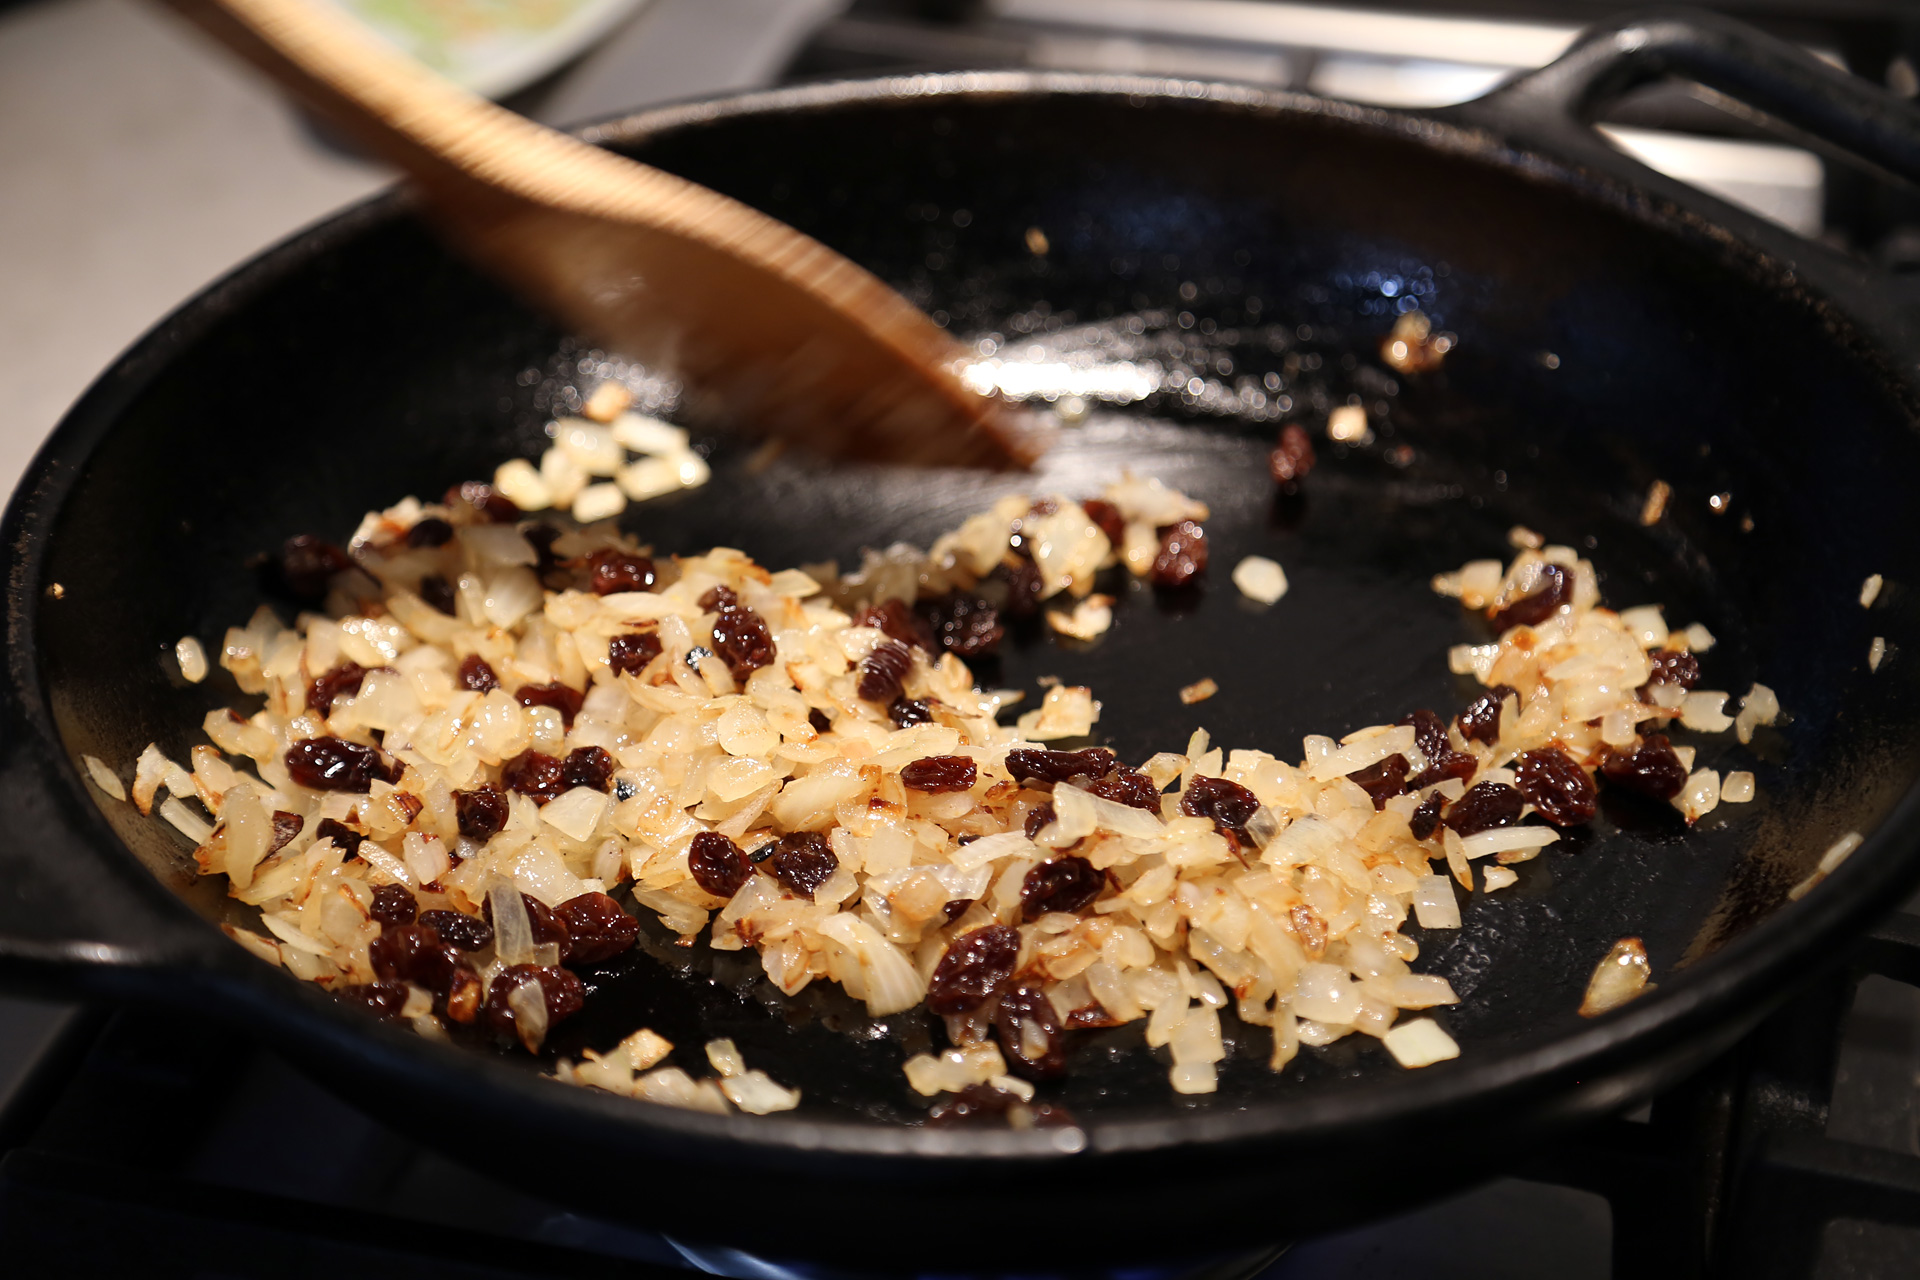 Add the raisins and garlic and fry until the raisins begin to puff and the garlic becomes fragrant, about 2 minutes.